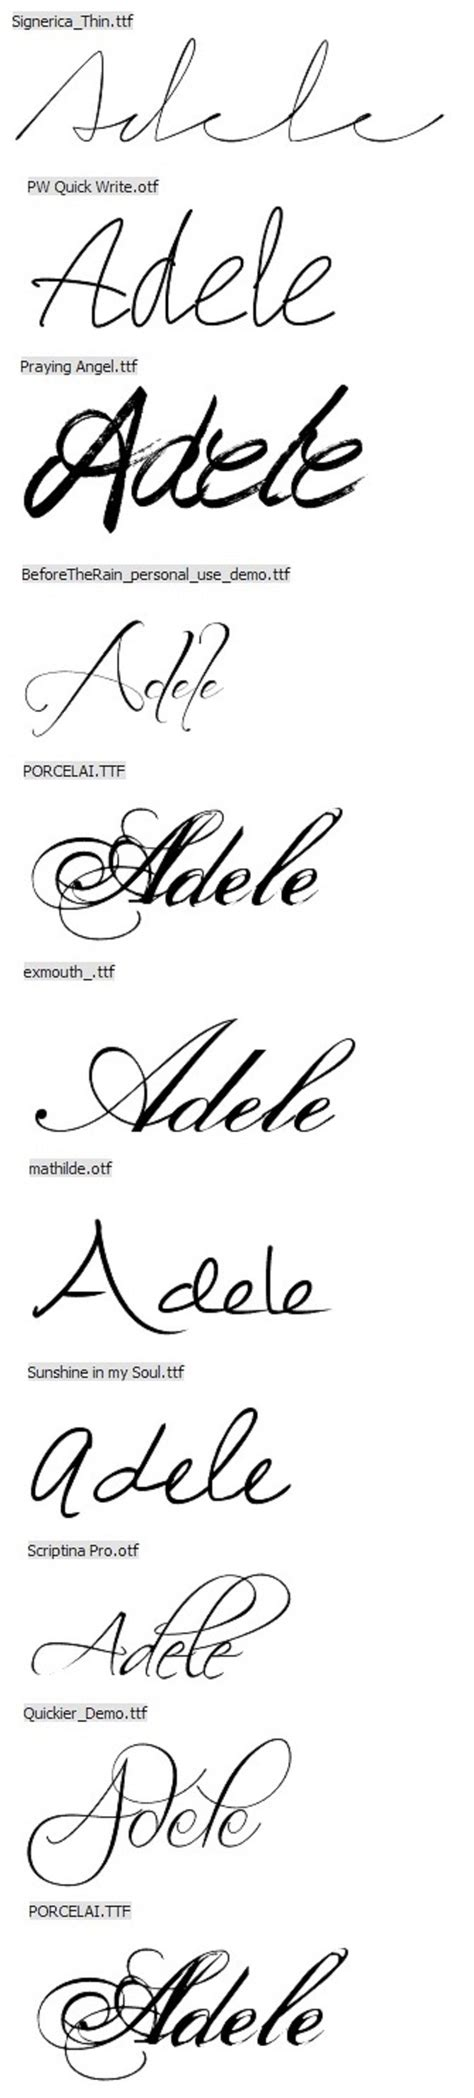 tattoo fonts of names pin by jeanette gordils on tats